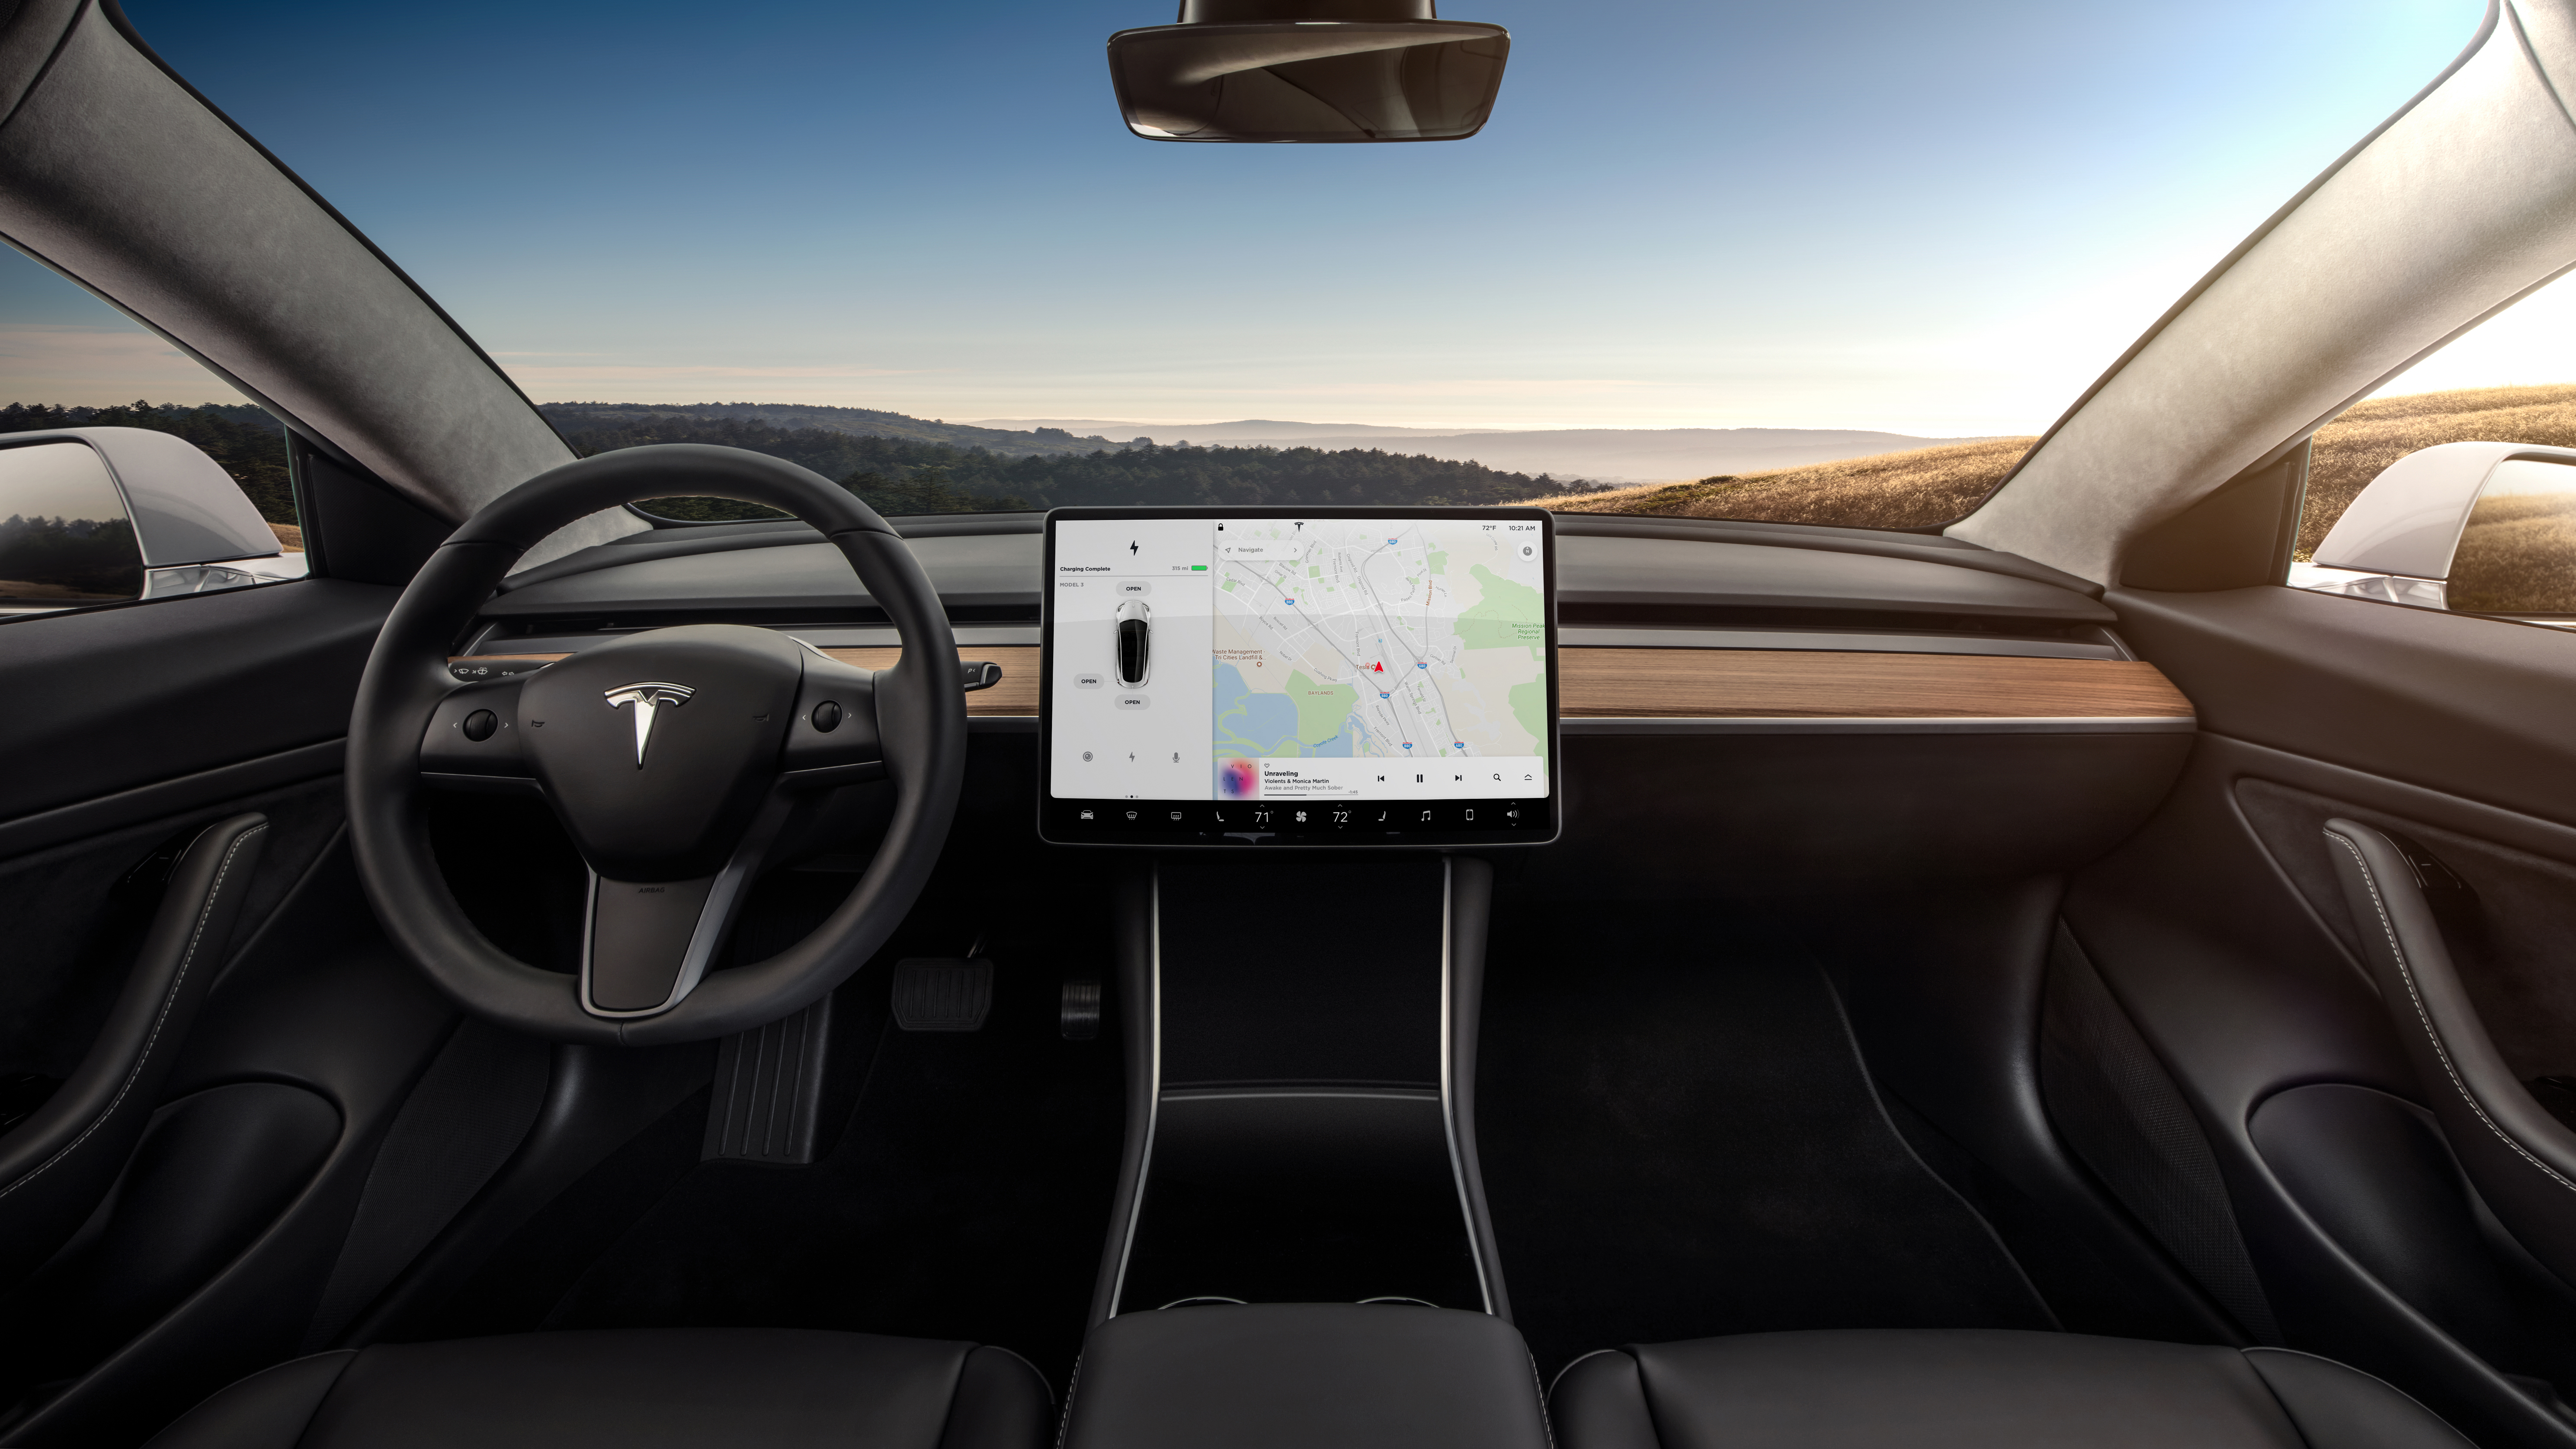 Mitsubishi Outlander Phev 2019 >> Tesla Model 3 Interior Dash- Head On - The Green Car Guy